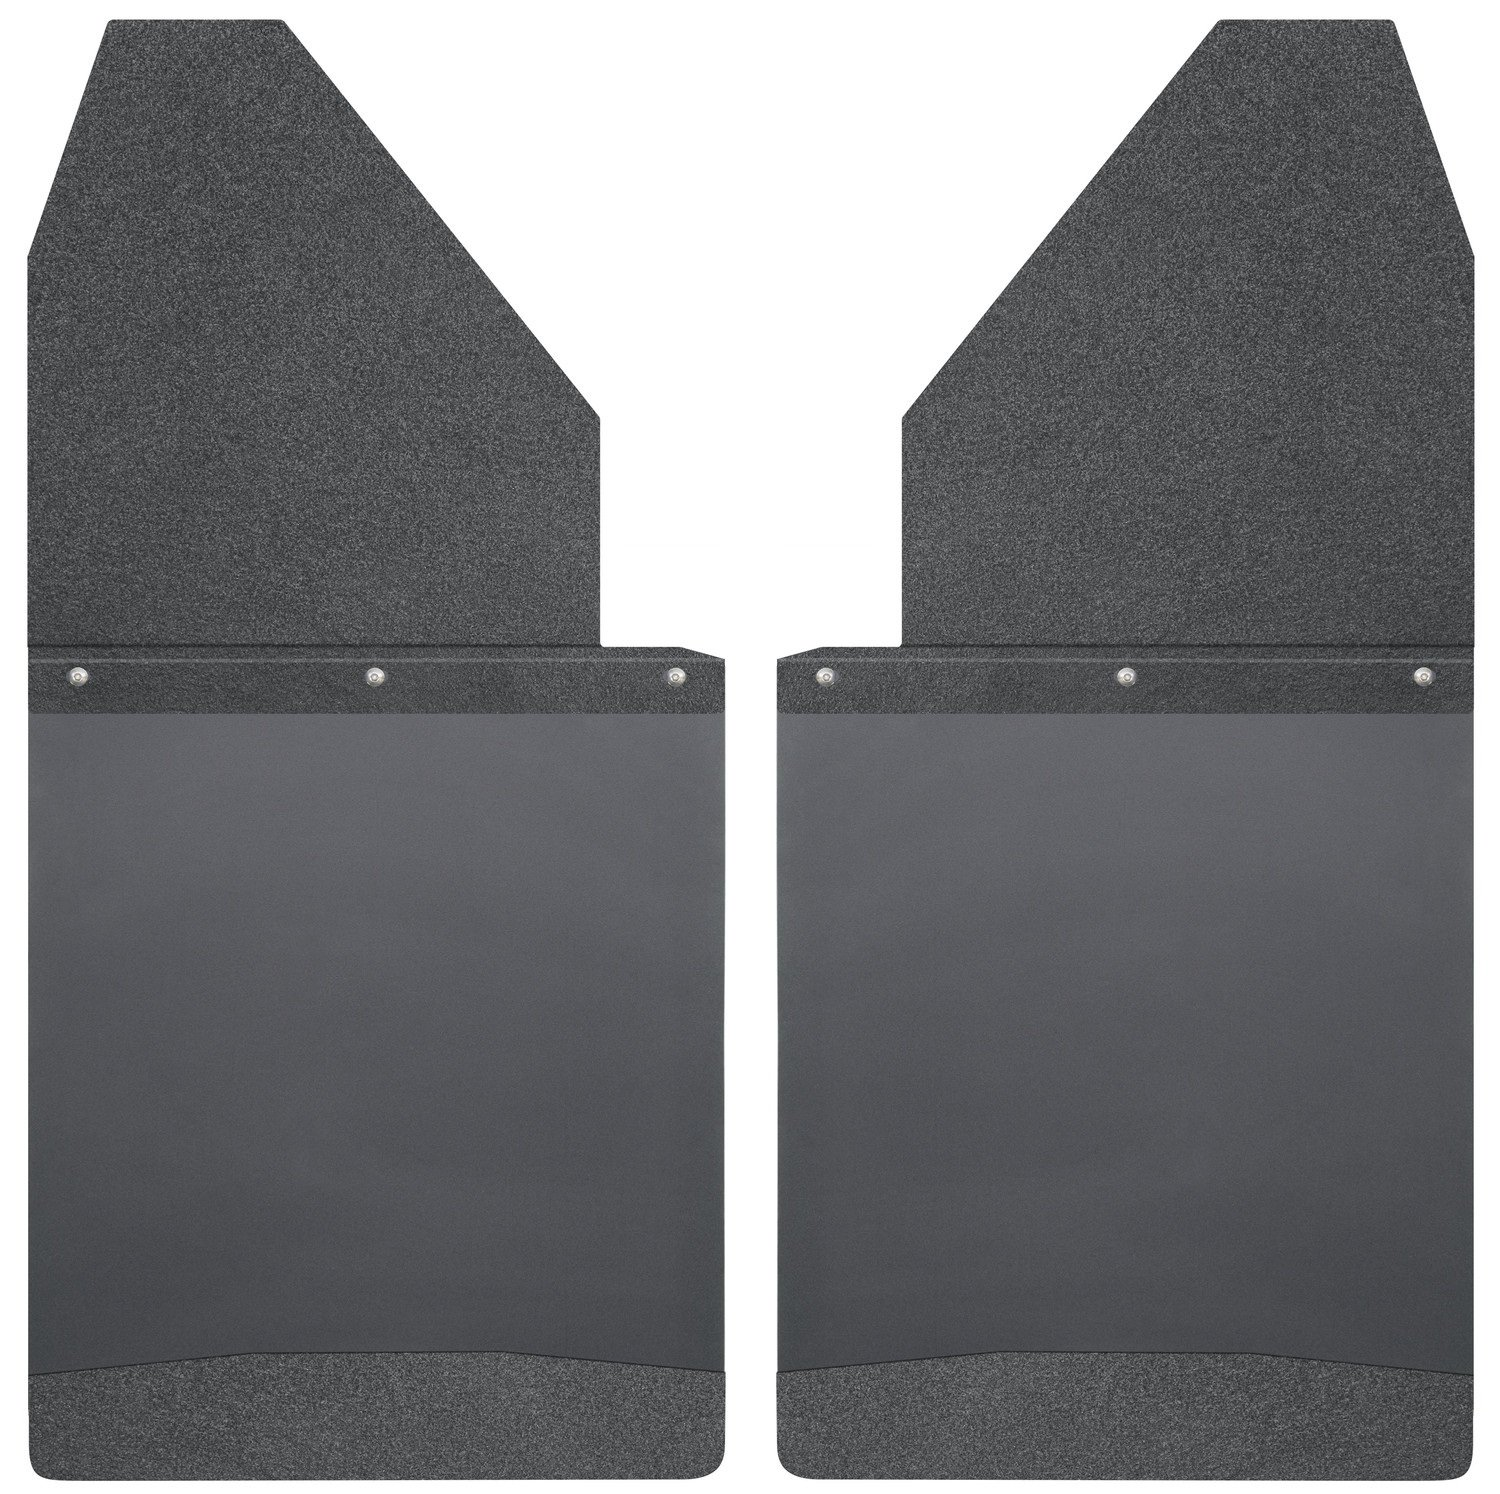 Black Top//Wt Fits Silverado//F150//Ram 17112 Husky Liners Kick Back Mud Flaps 14IN Wide